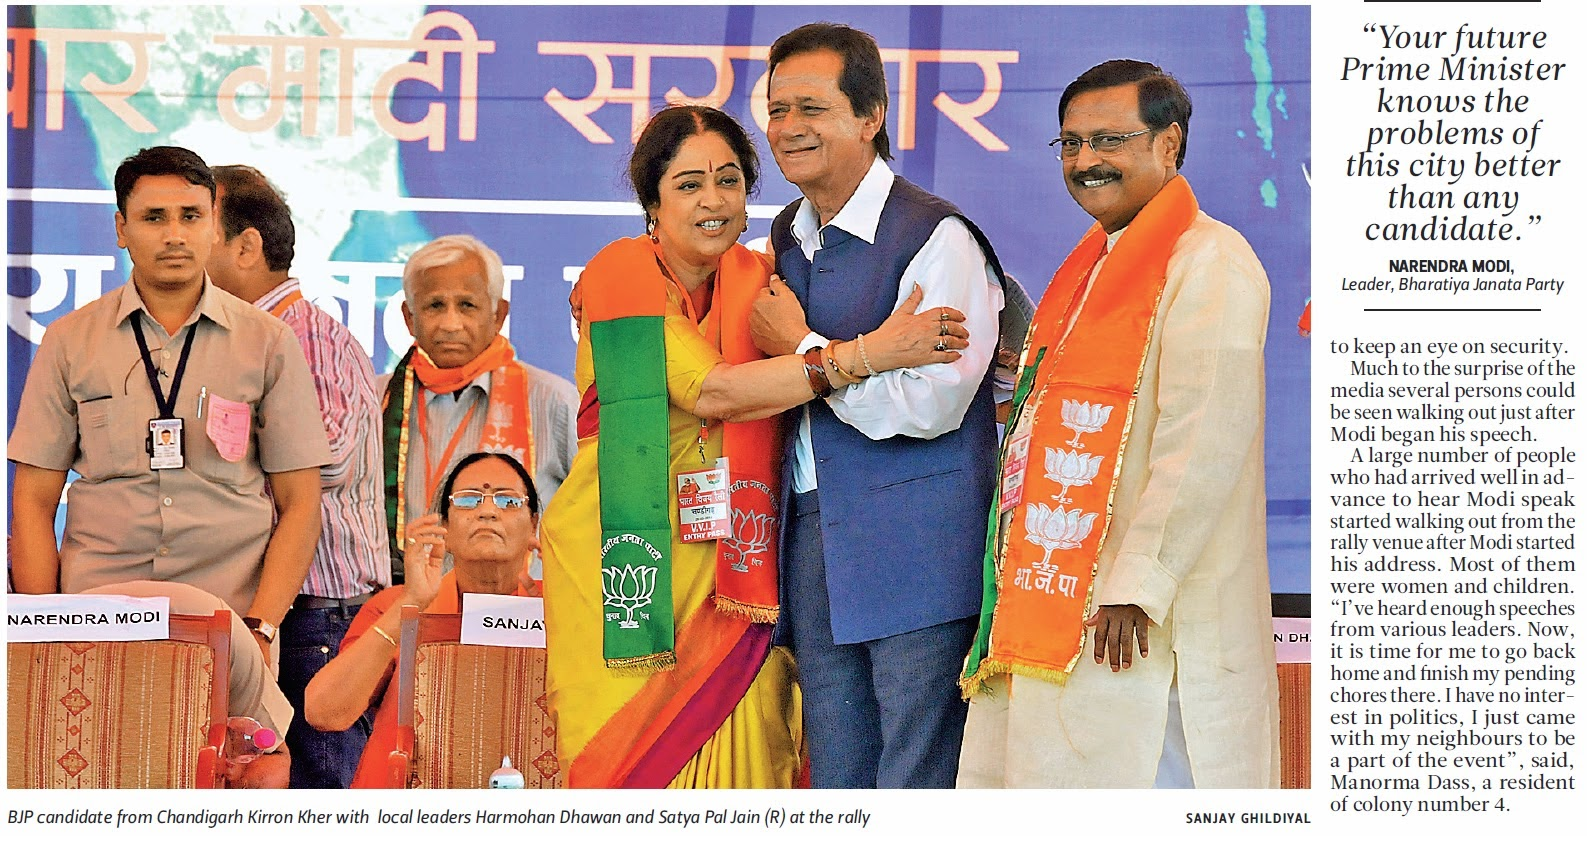 BJP candidate from Chandigarh Kirron Kher with Harmohan Dhawan & Satya Pal Jain at the rally